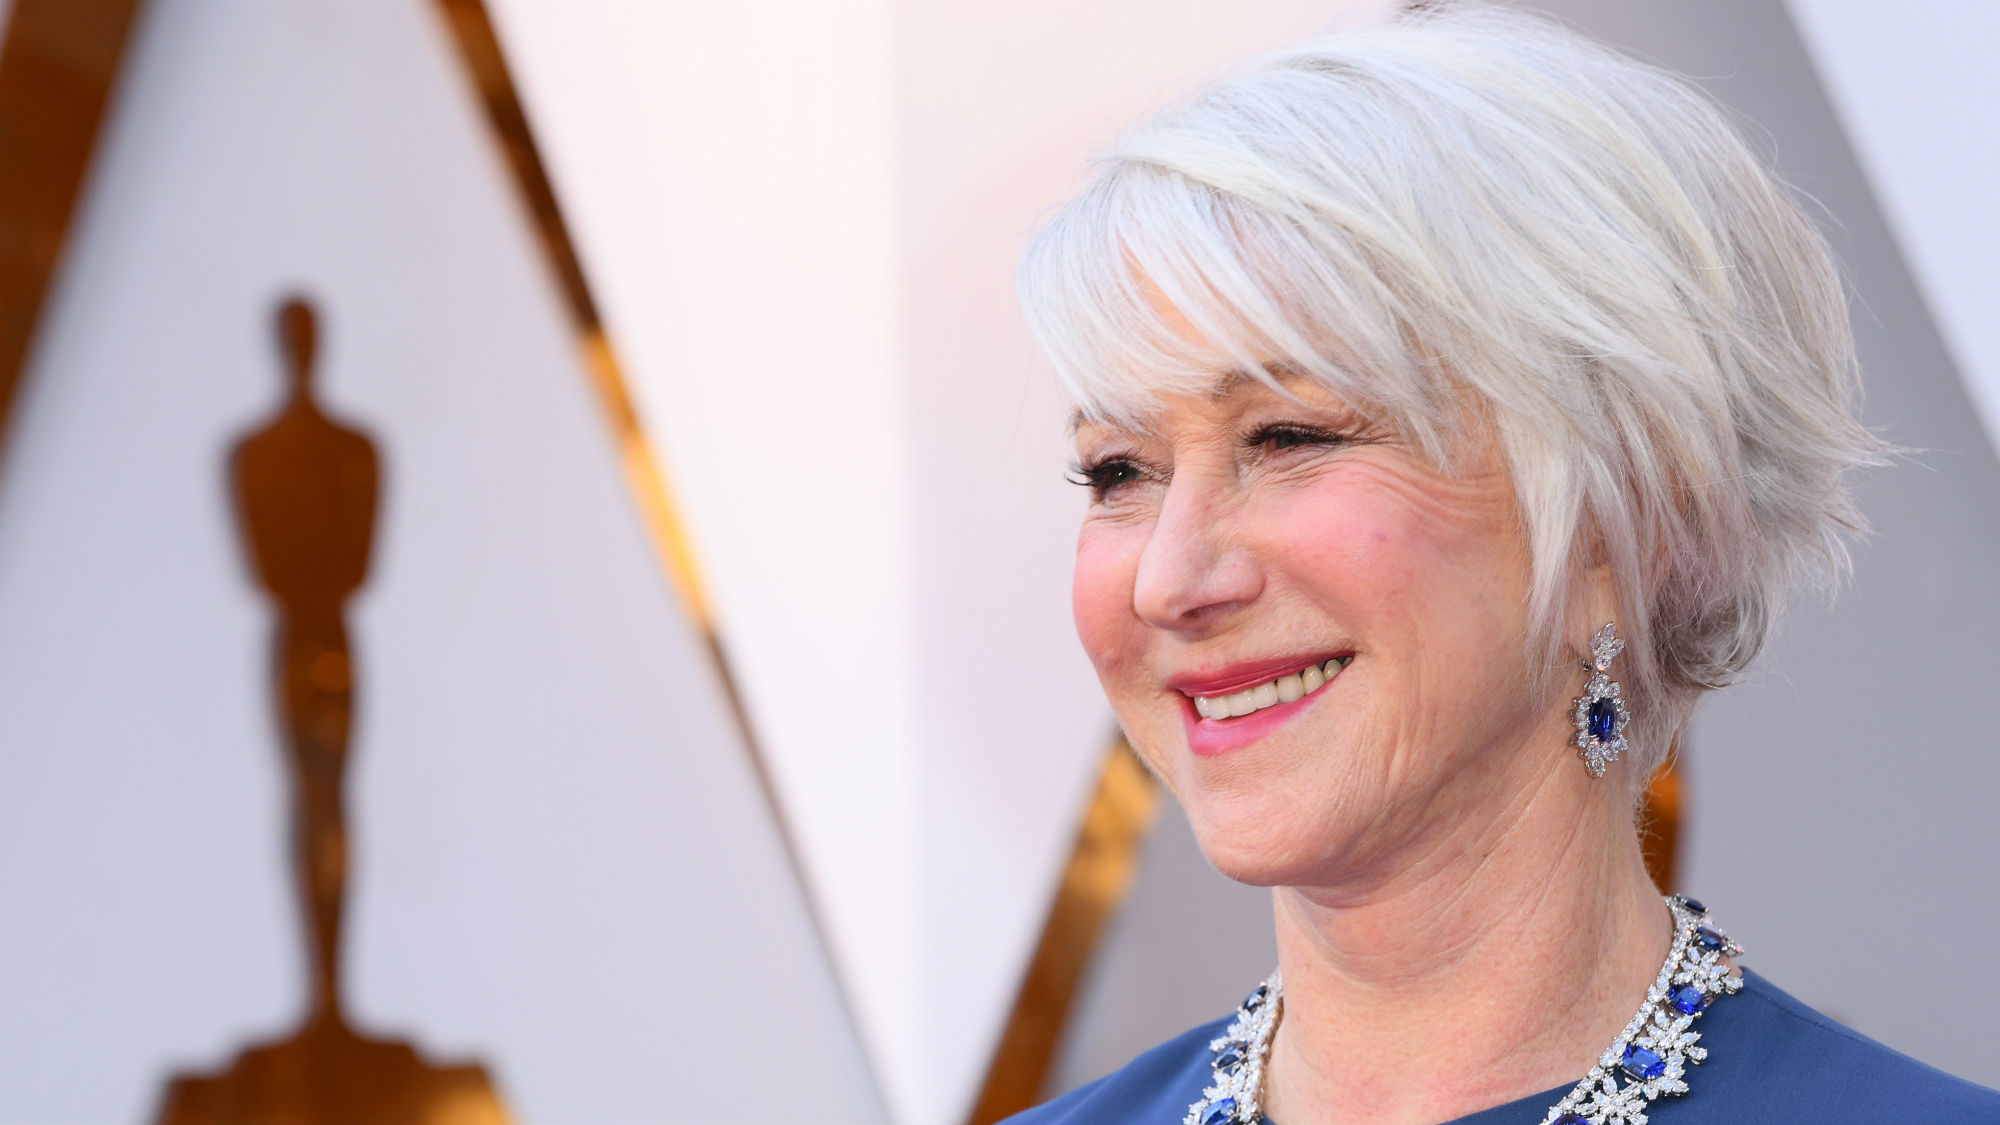 helen mirren does a tequila shot on the oscars red carpet like a legend